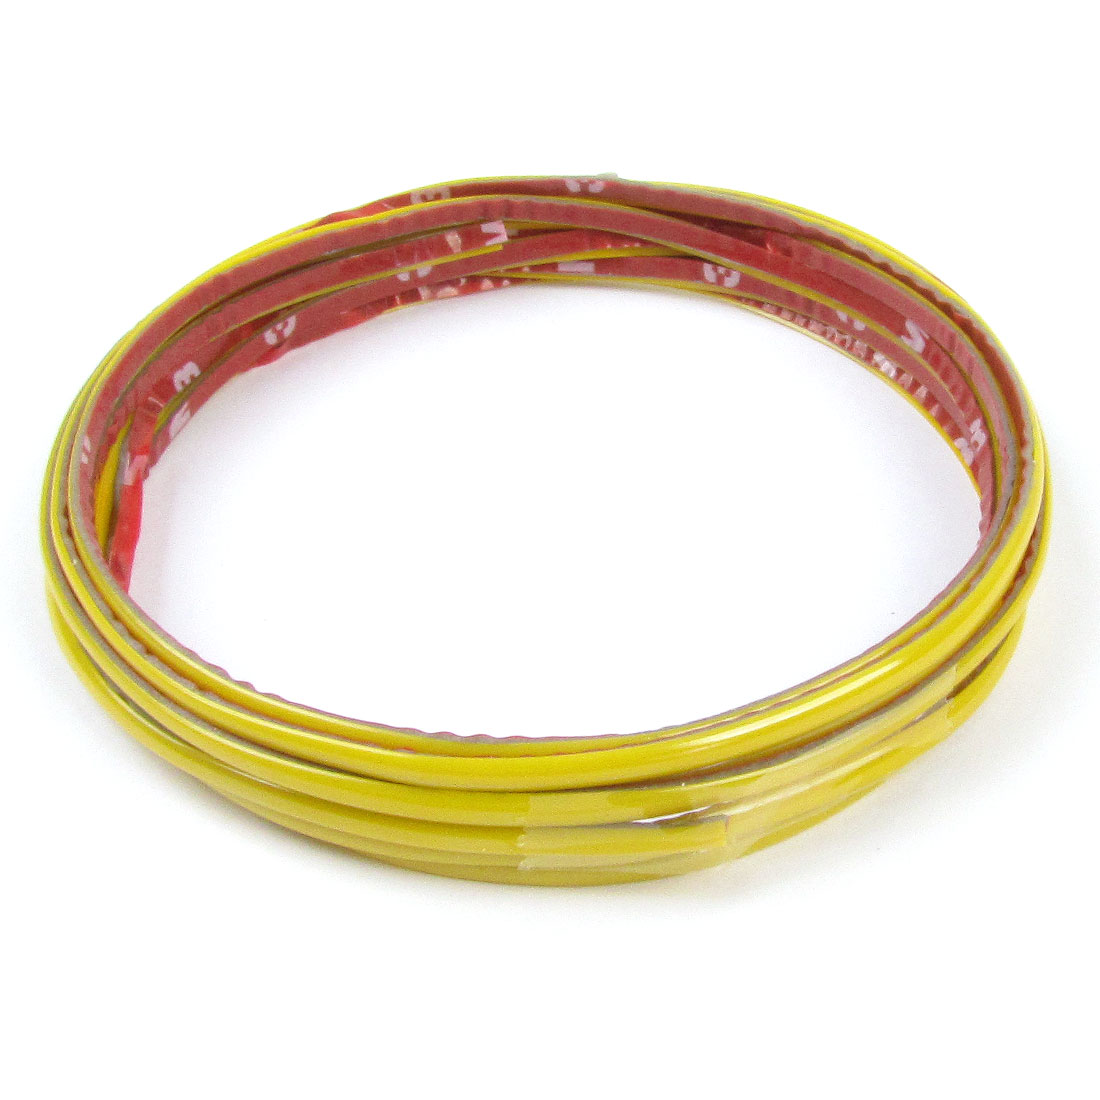 Yellow 4mm x 5M Length Soft Plastic Vehicle Car Panel Moulding Trim Strip